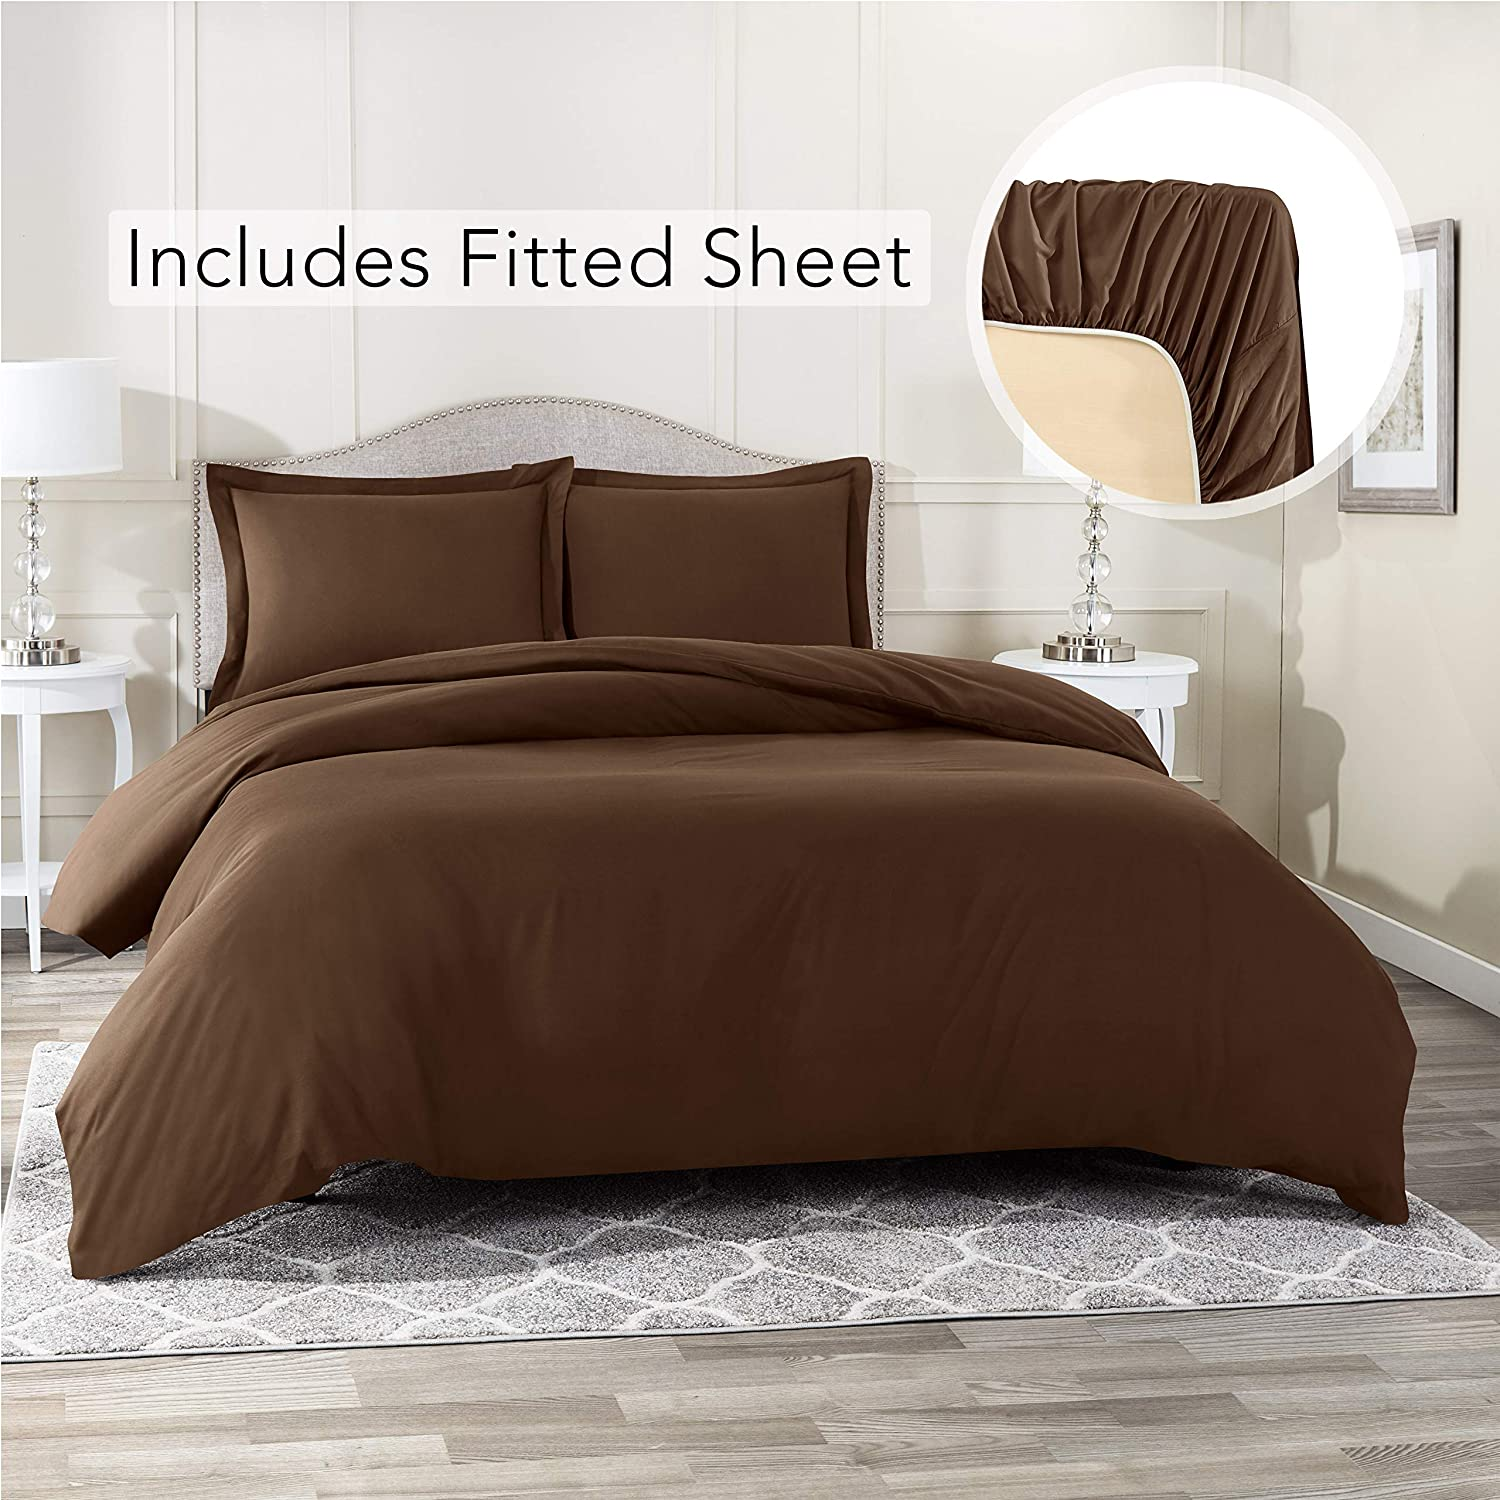 Nestl Bedding Duvet Cover with Fitted Sheet 3 Piece Set - Soft Double Brushed Microfiber Hotel Collection - Comforter Cover with Button Closure, Fitted Sheet, 1 Pillow Sham, Twin XL - Chocolate Brown